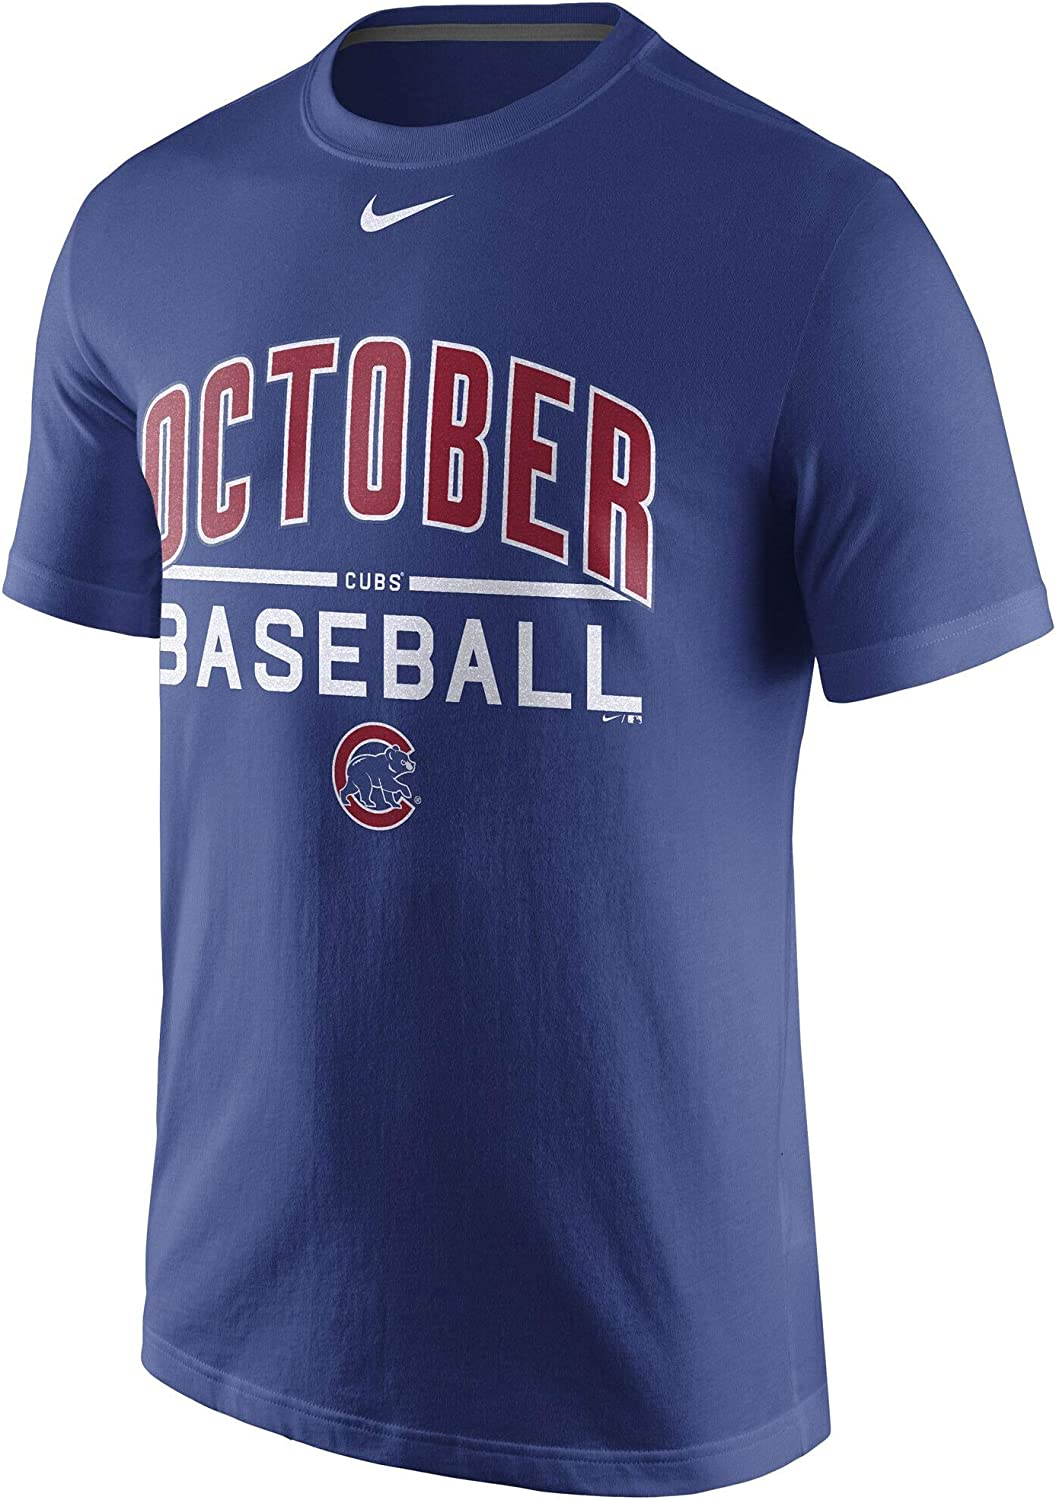 XX-Large Nike Mens Chicago Cubs Royal 2016 Postseason October Baseball Playoff T-Shirt